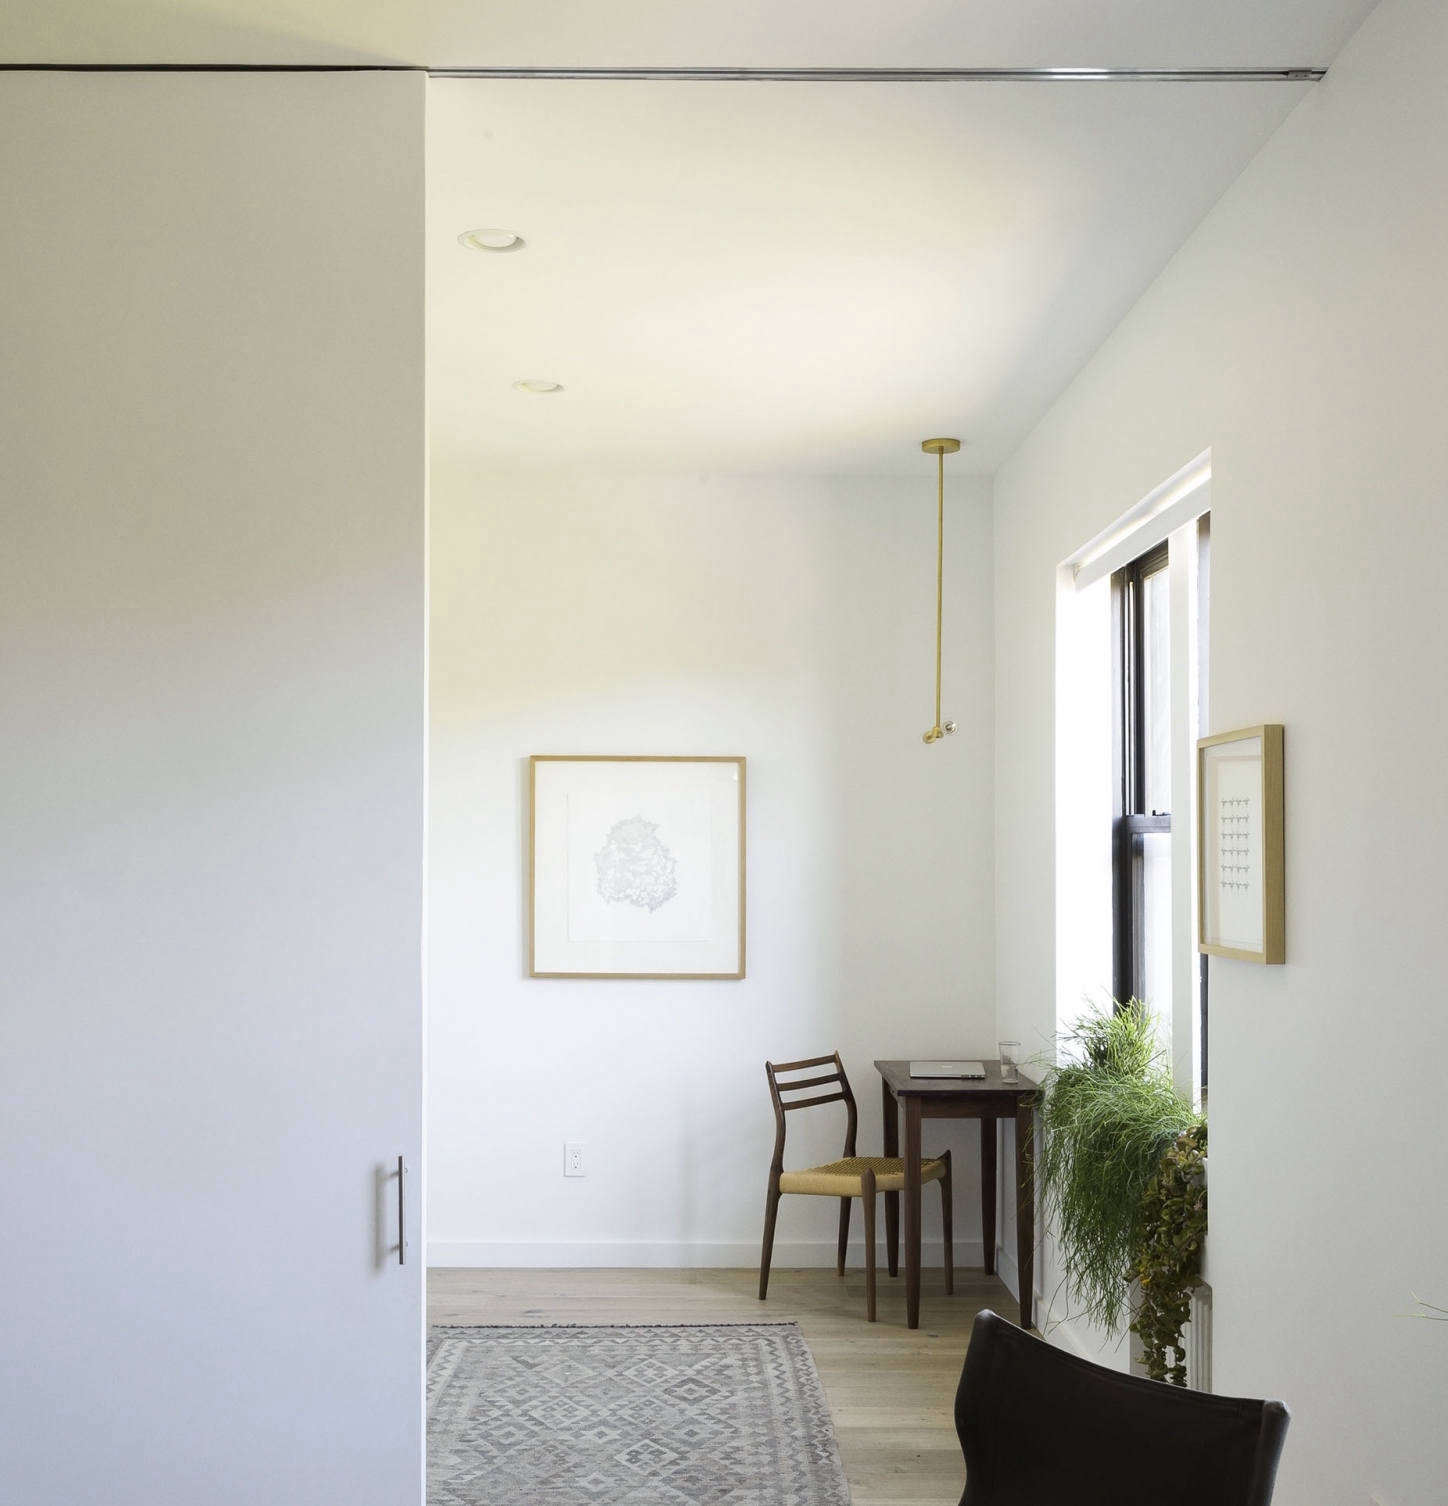 b6e89871725 Expert Advice  5 Things to Know About Recessed Lighting from Architect  Oliver Freundlich - Remodelista